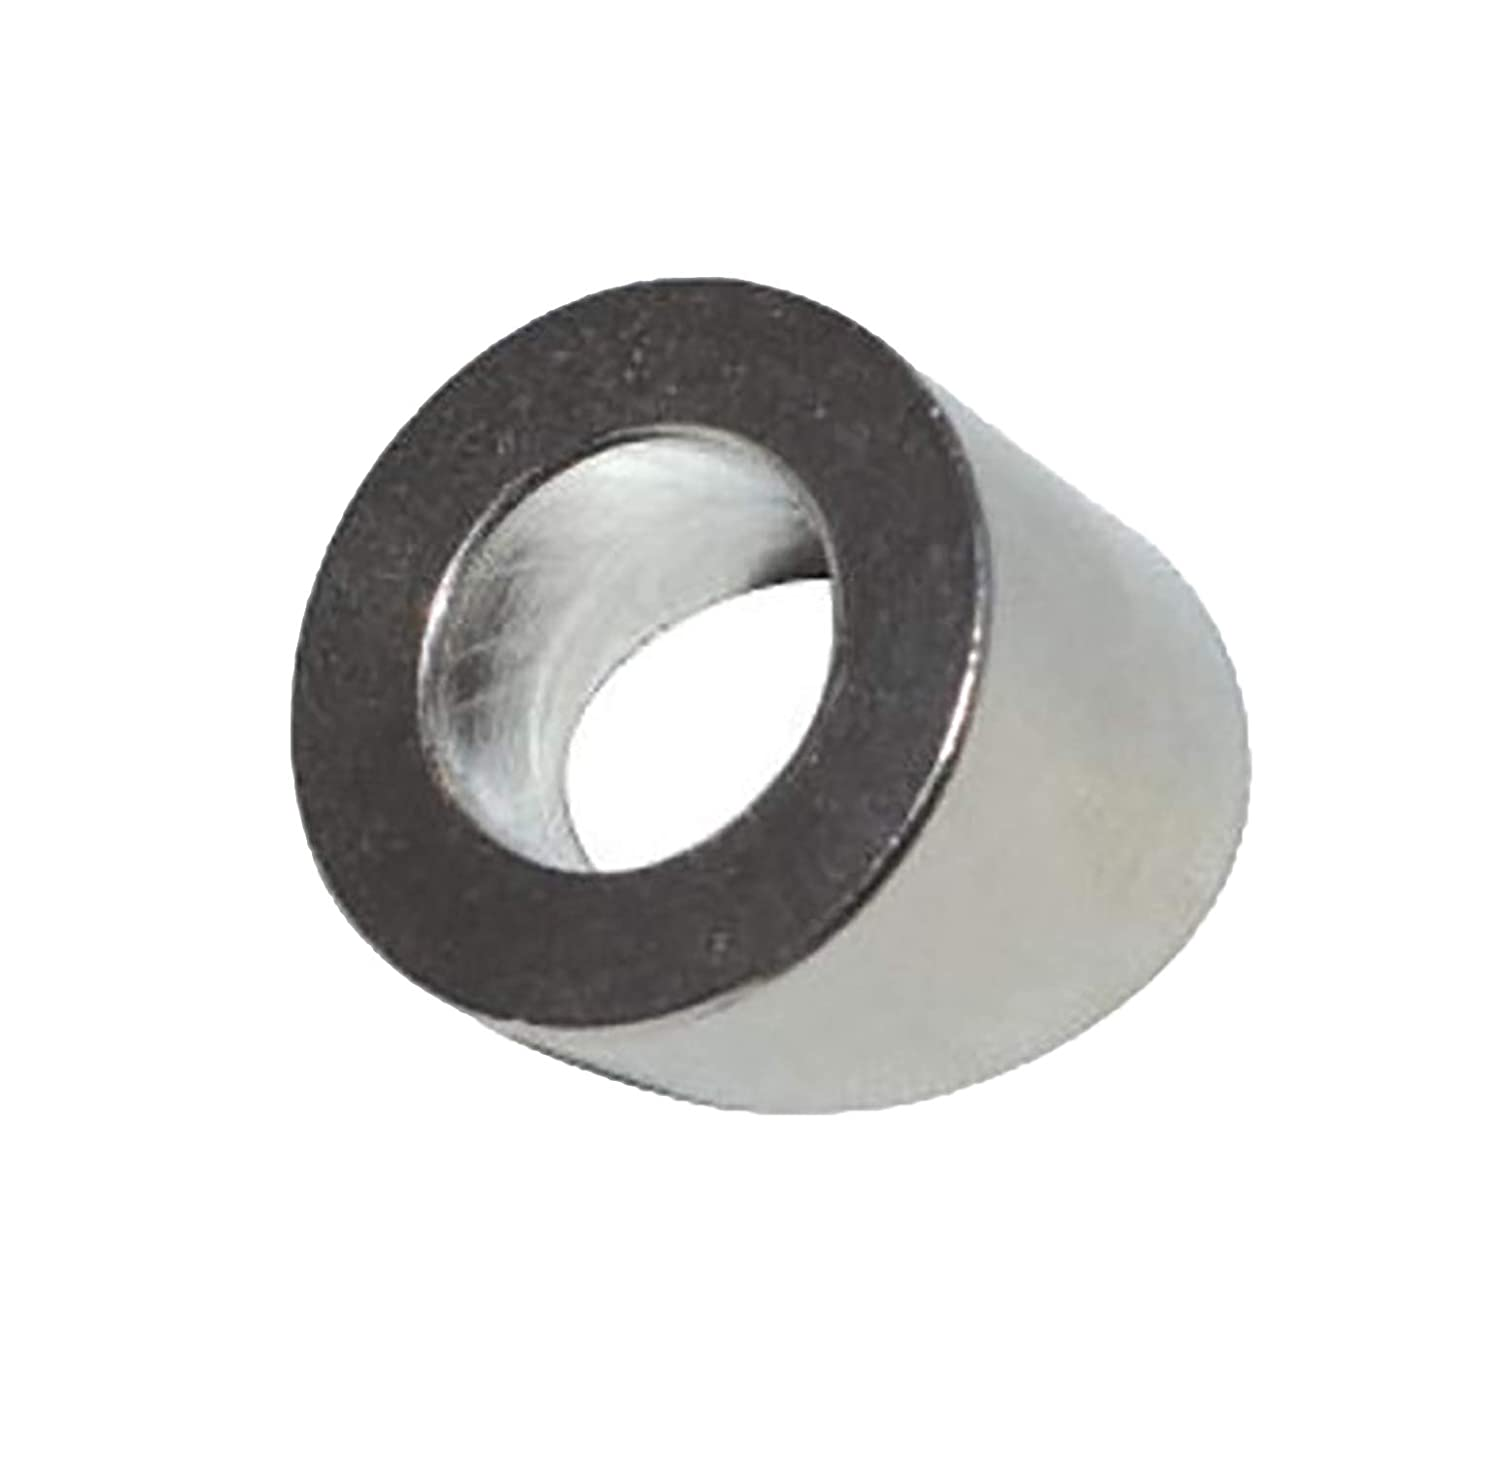 10 Pieces - 1/4' 30 Degree Angle Beveled Washer Stainless Steel T316 Marine Grade Shemonico